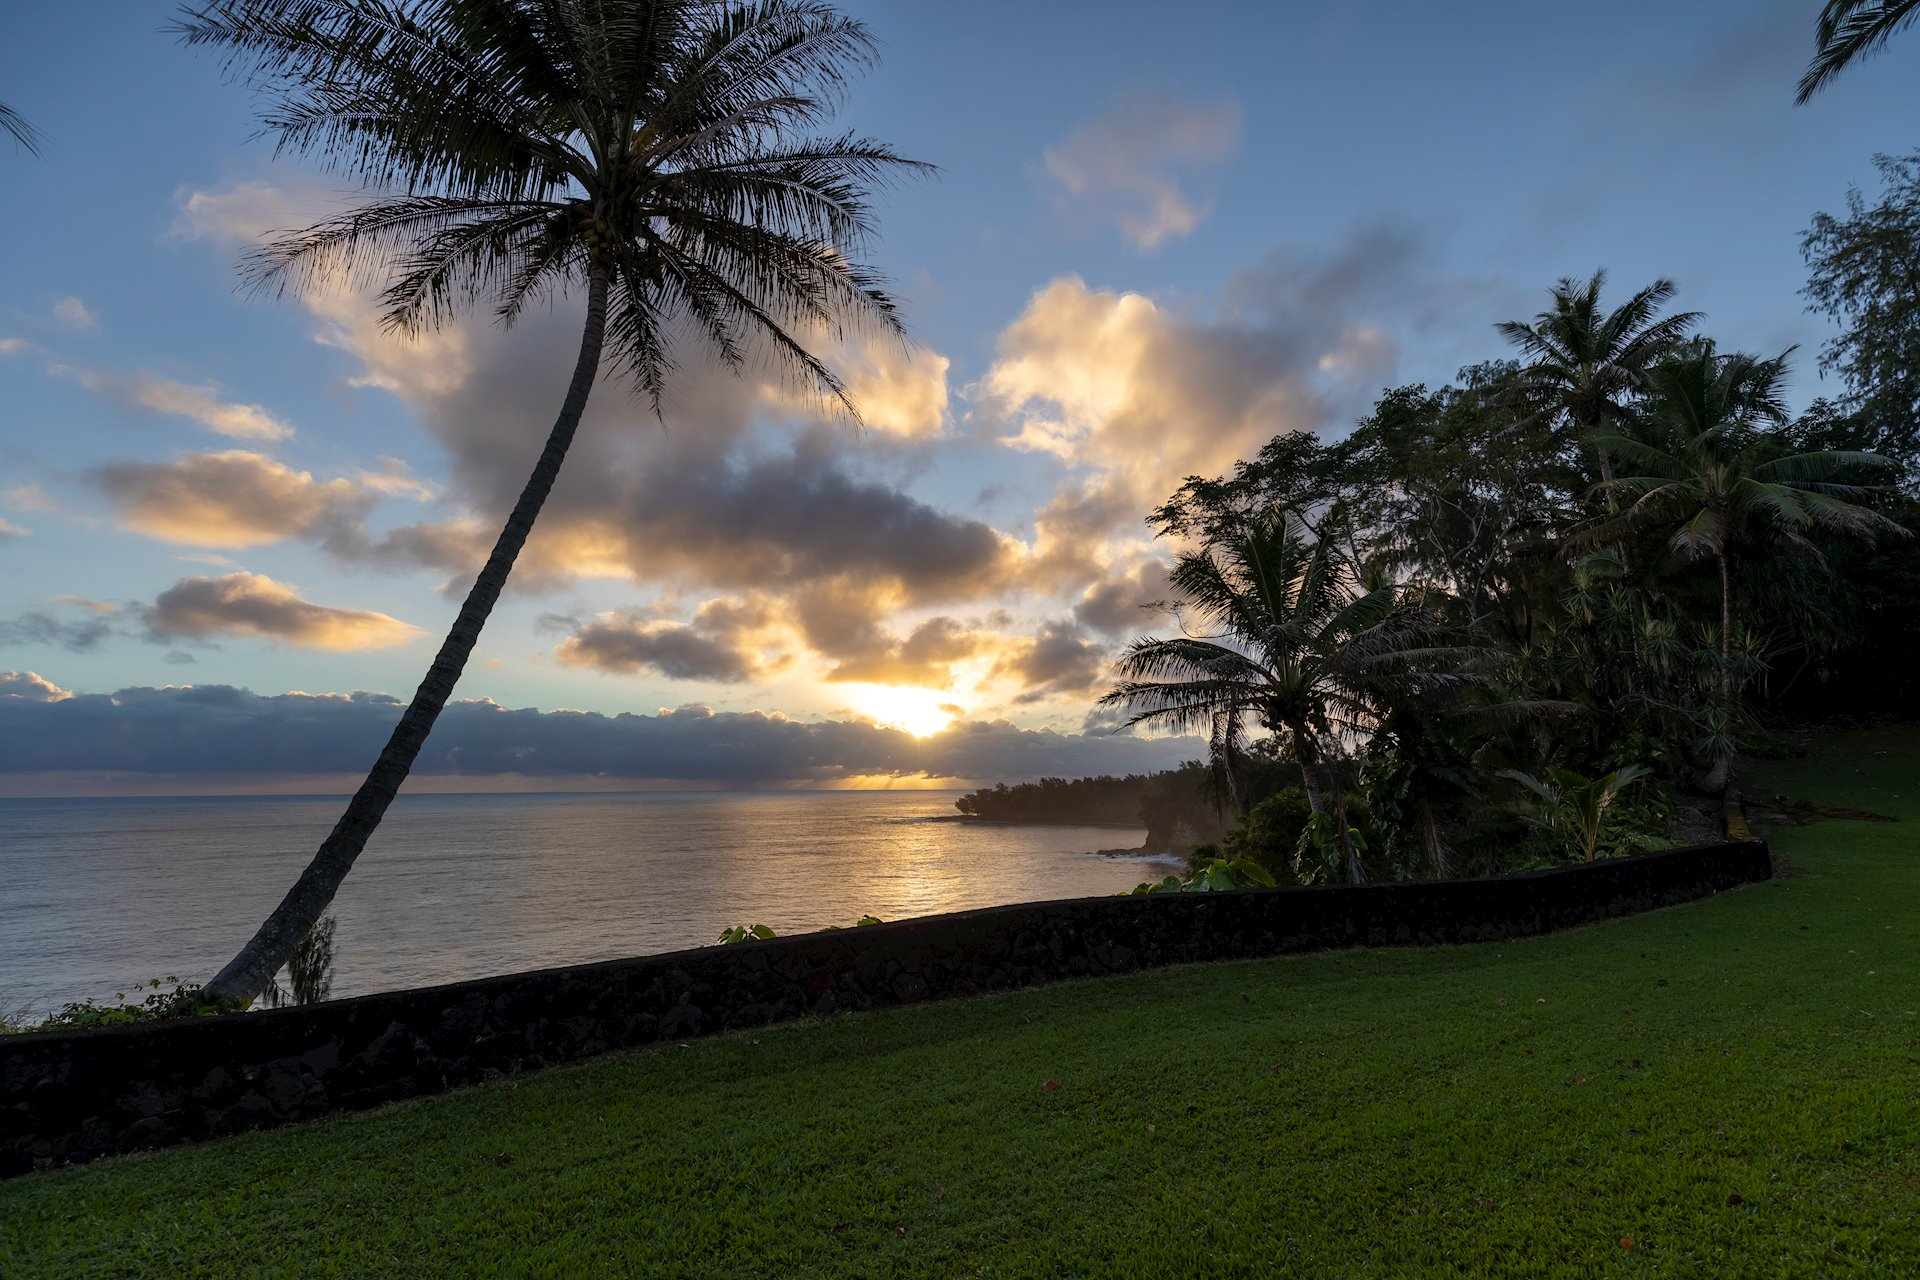 """Sunrise over the ocean. Ocean views look to Pohakunanu Bay and locally known surfing sites called """"Ladders"""" and """"23 Flats""""."""